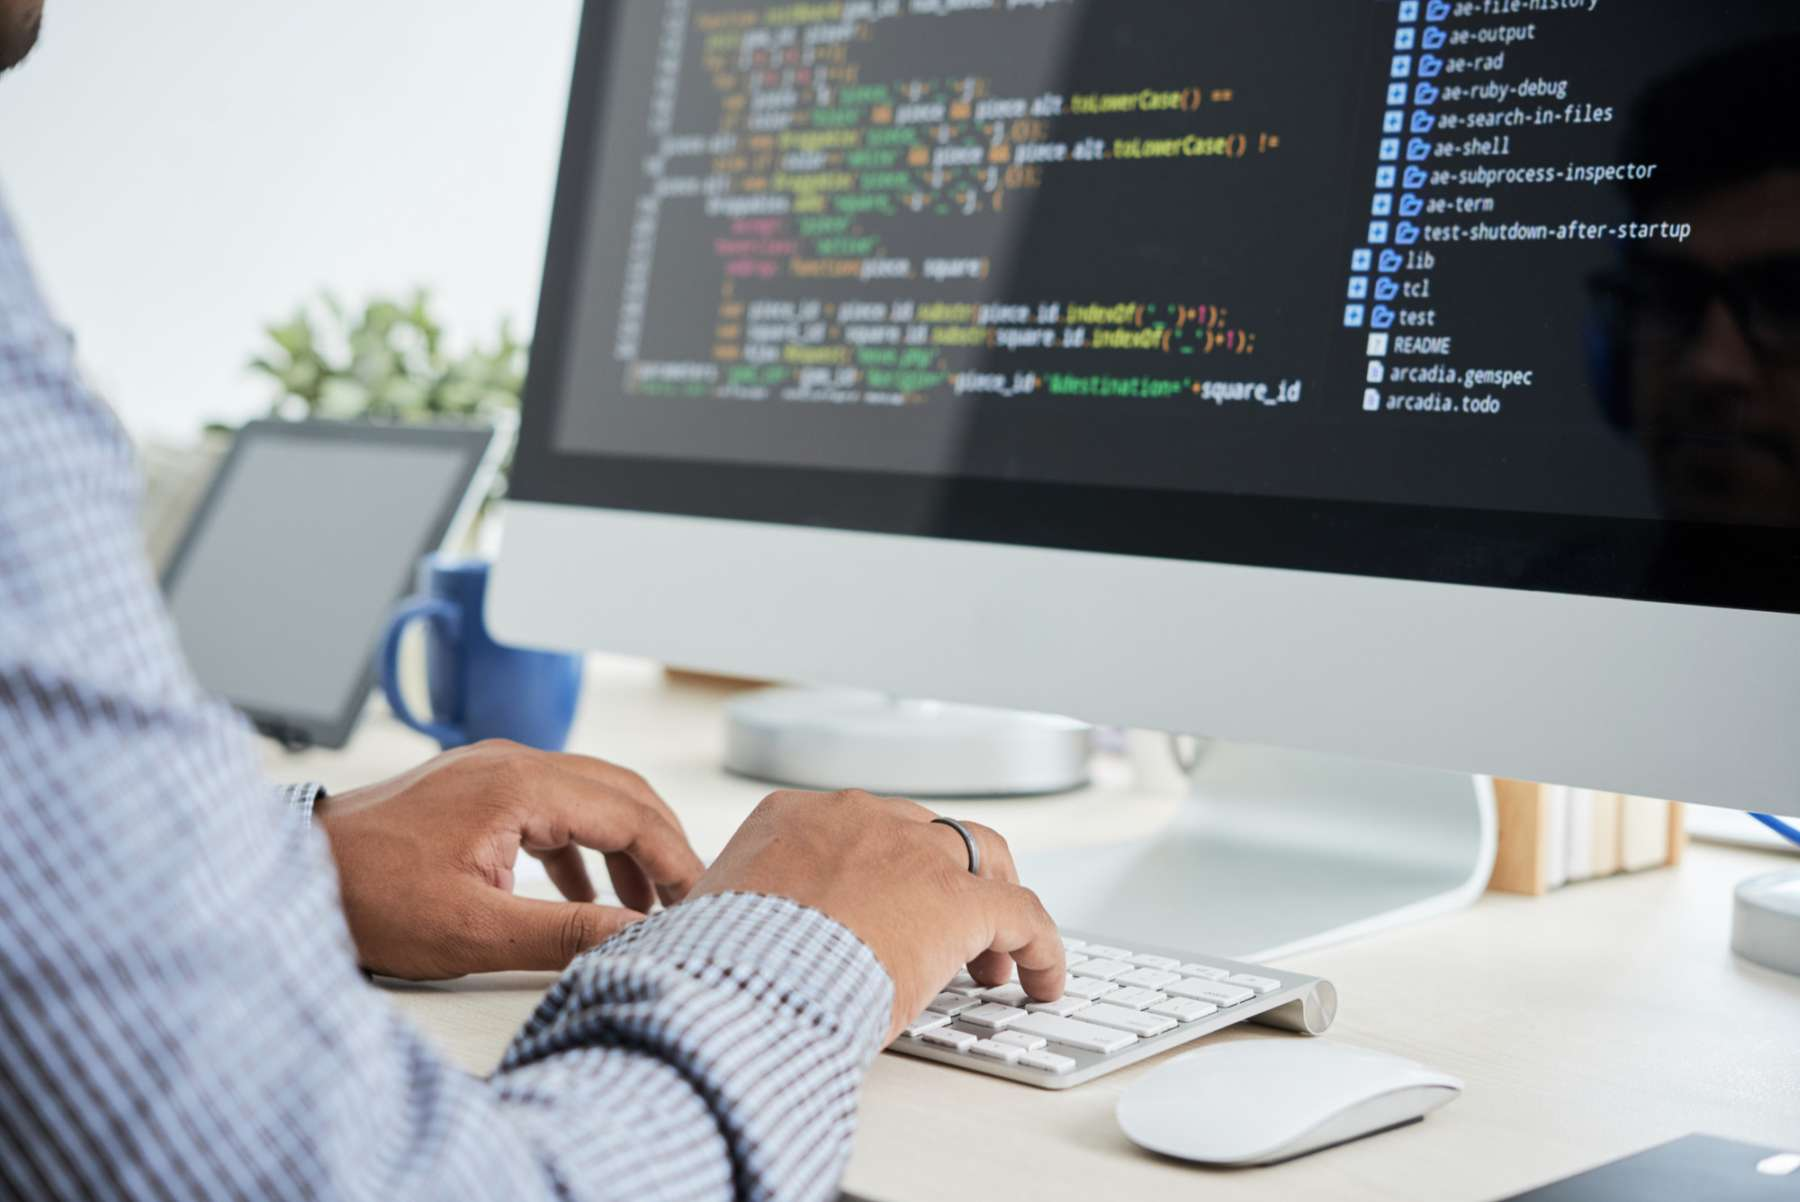 Cloud Application Development: Benefits of developing your custom applications in the cloud